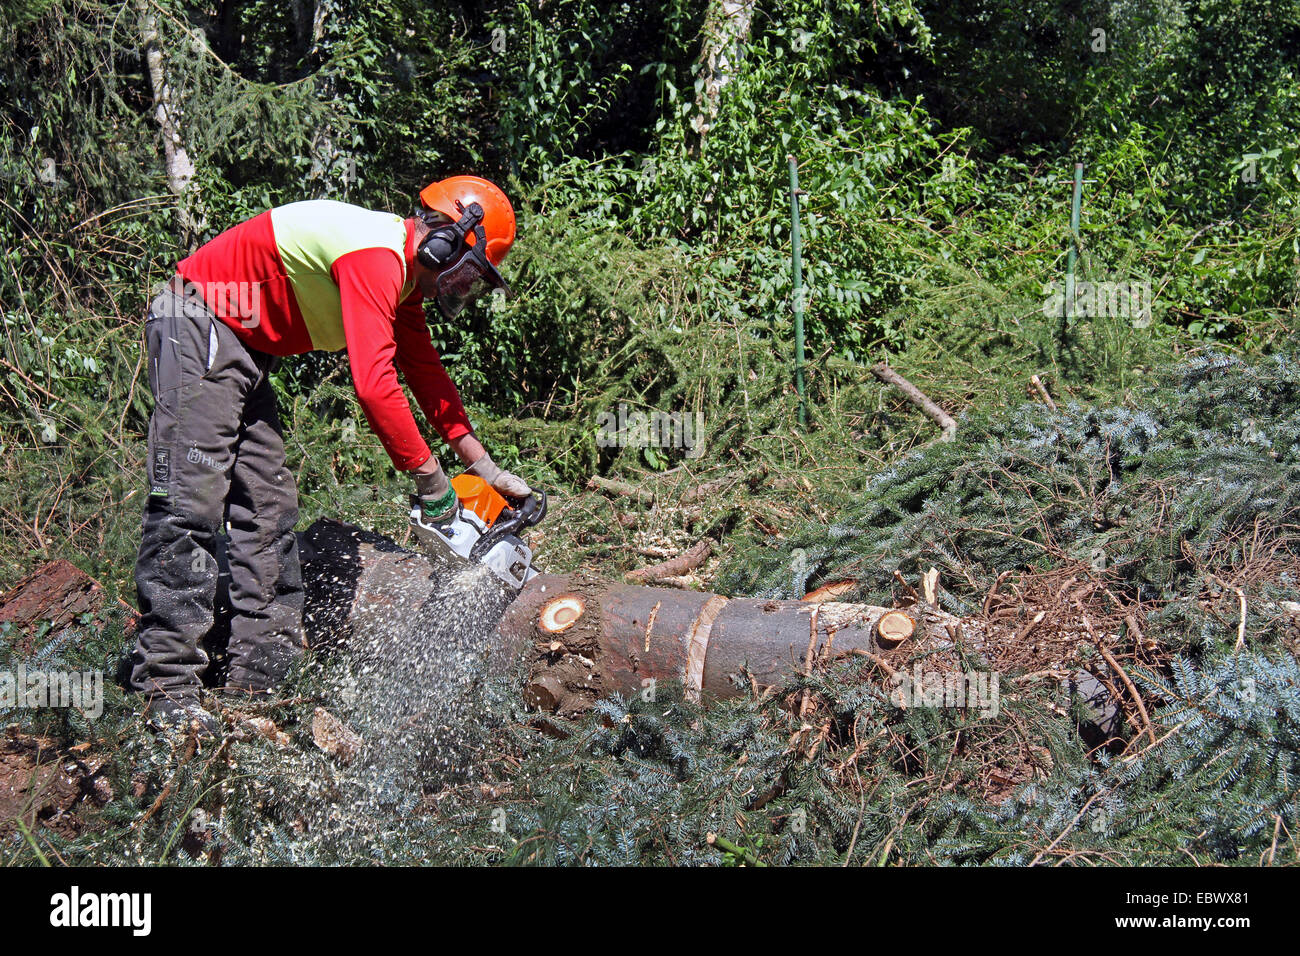 lumberjack cutting up logs of conifers, Germany - Stock Image